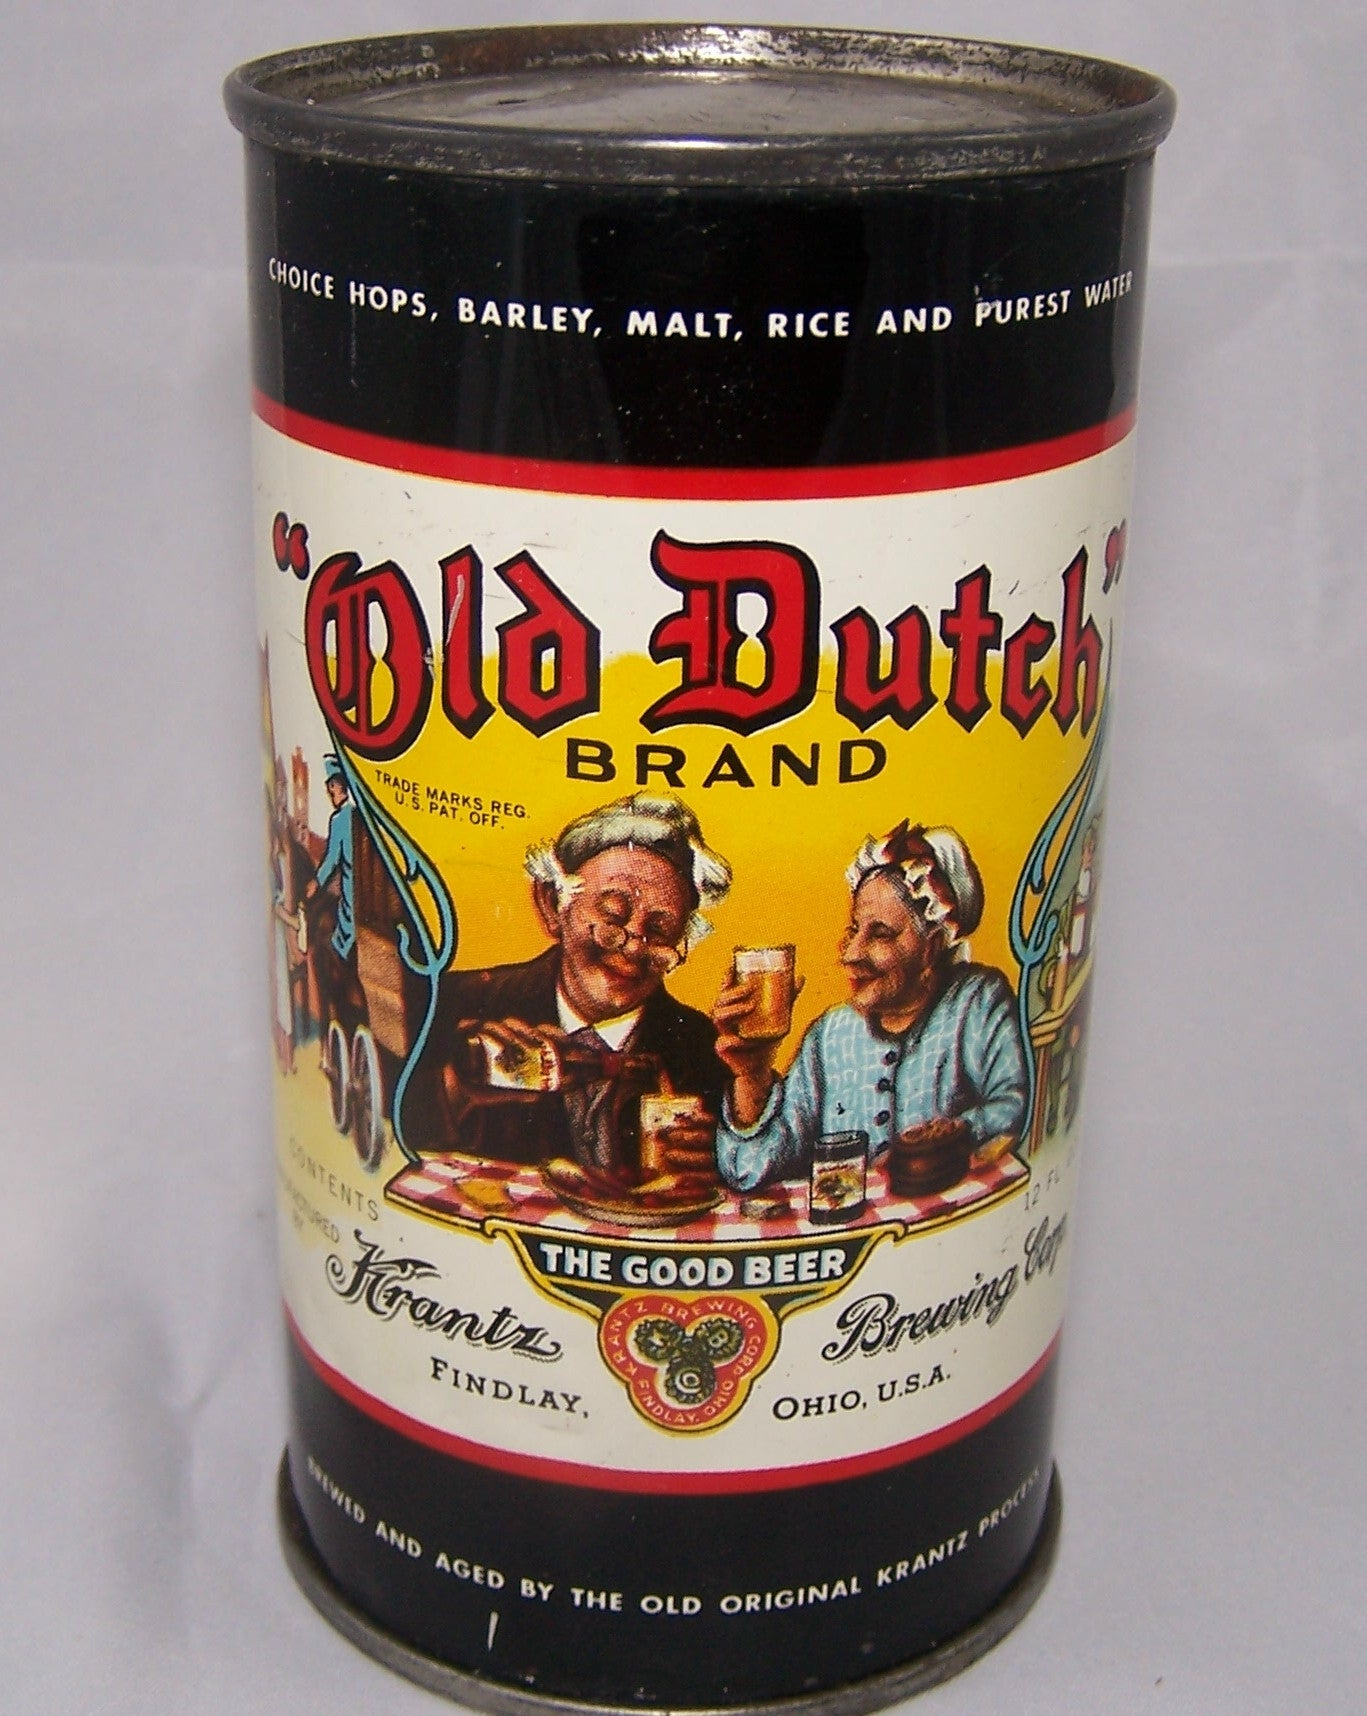 Old Dutch Brand Beer, USBC 106-4, Grade 1/1+ Sold on 12/15/15